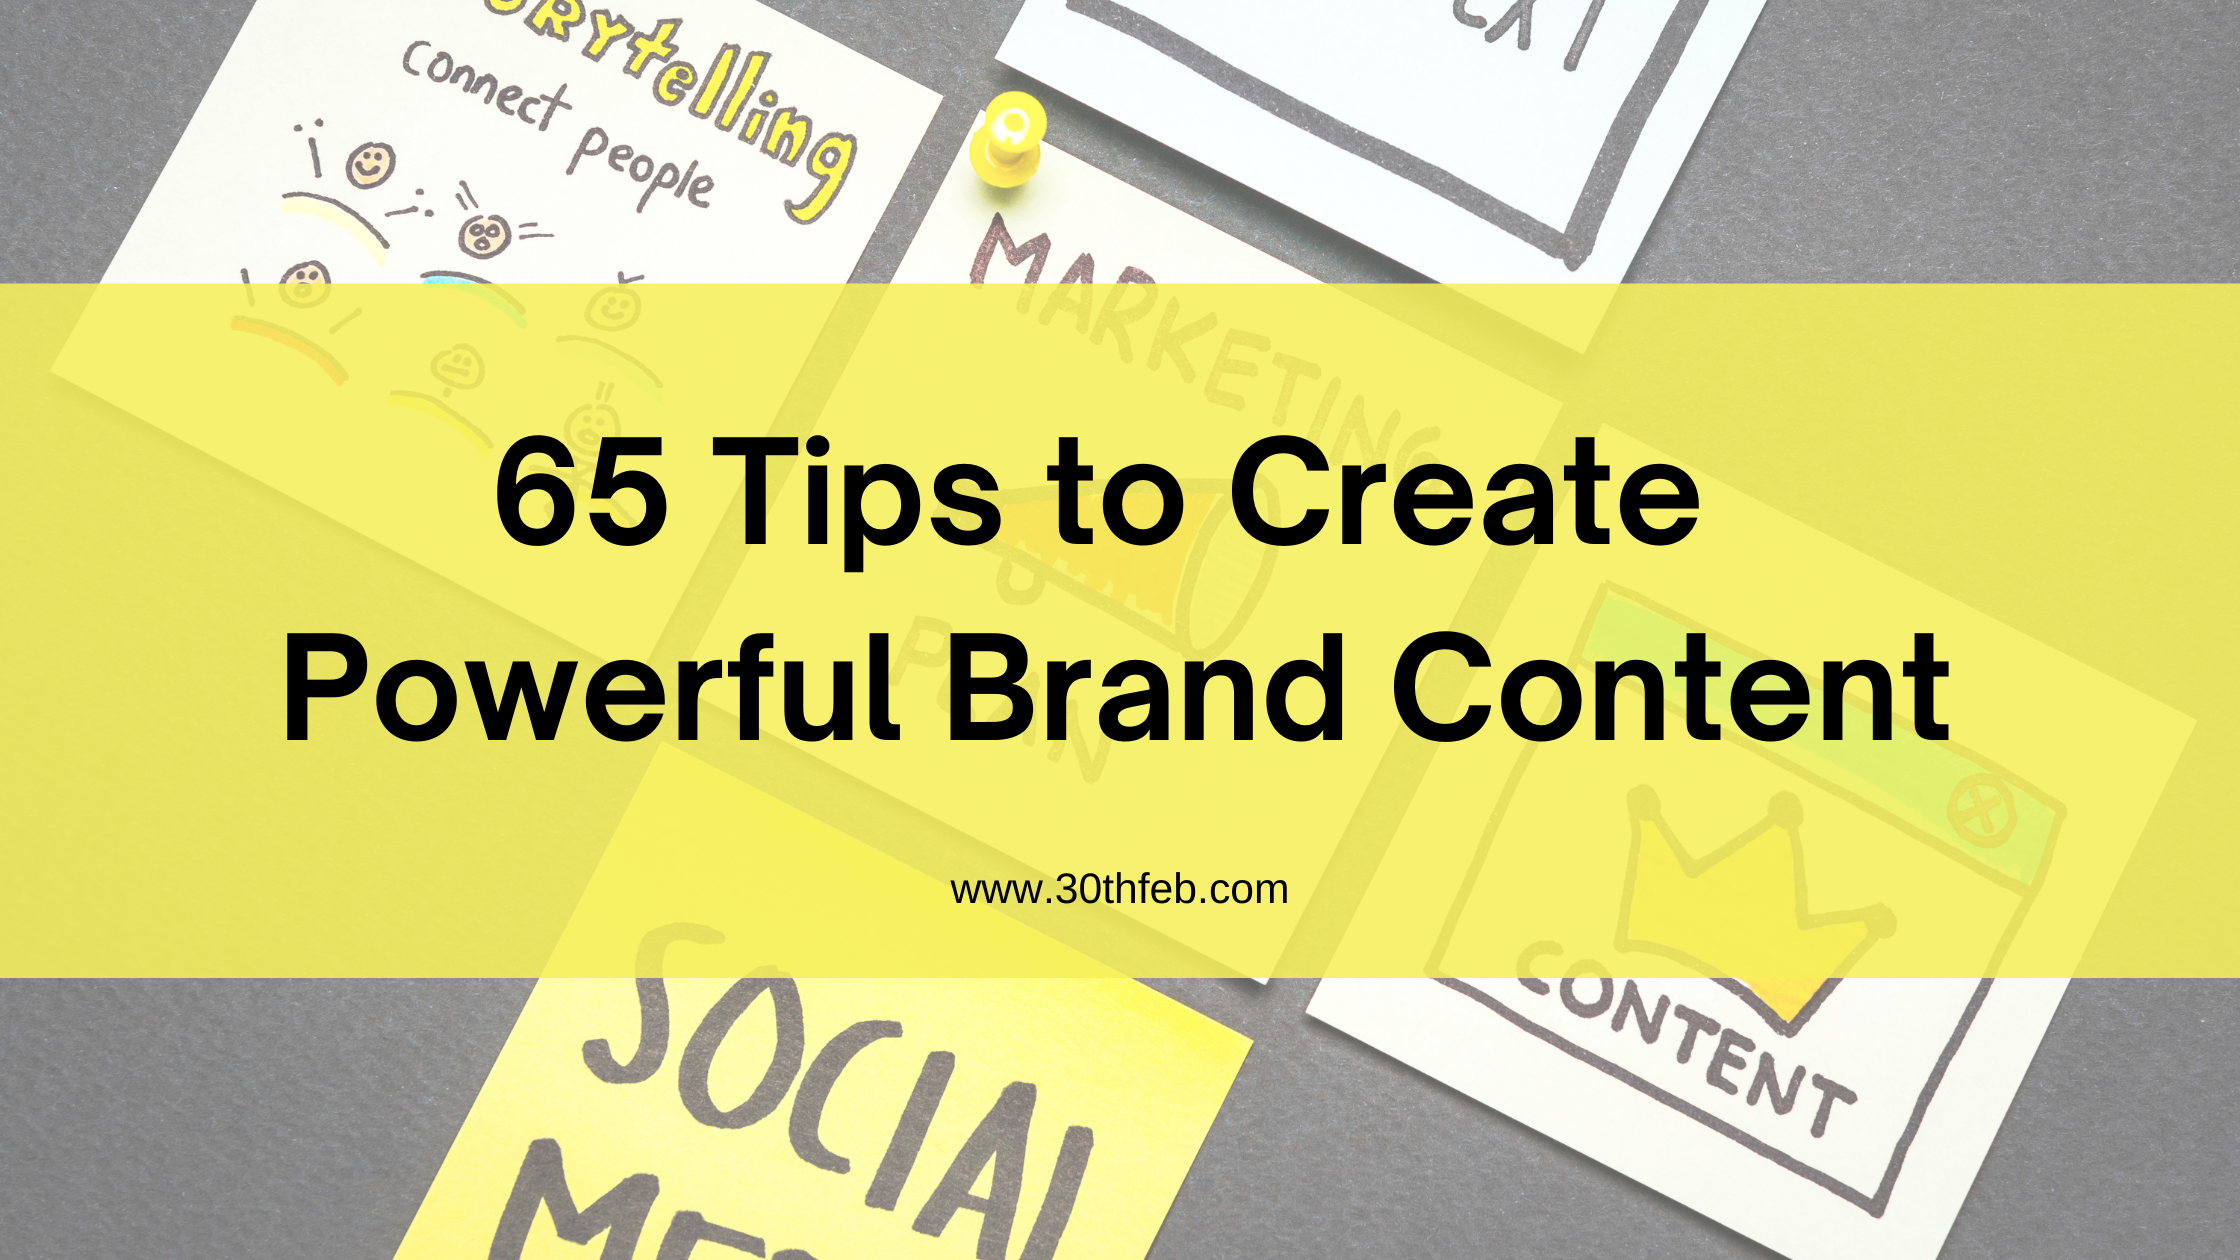 65 Tips to Create Powerful Brand Content